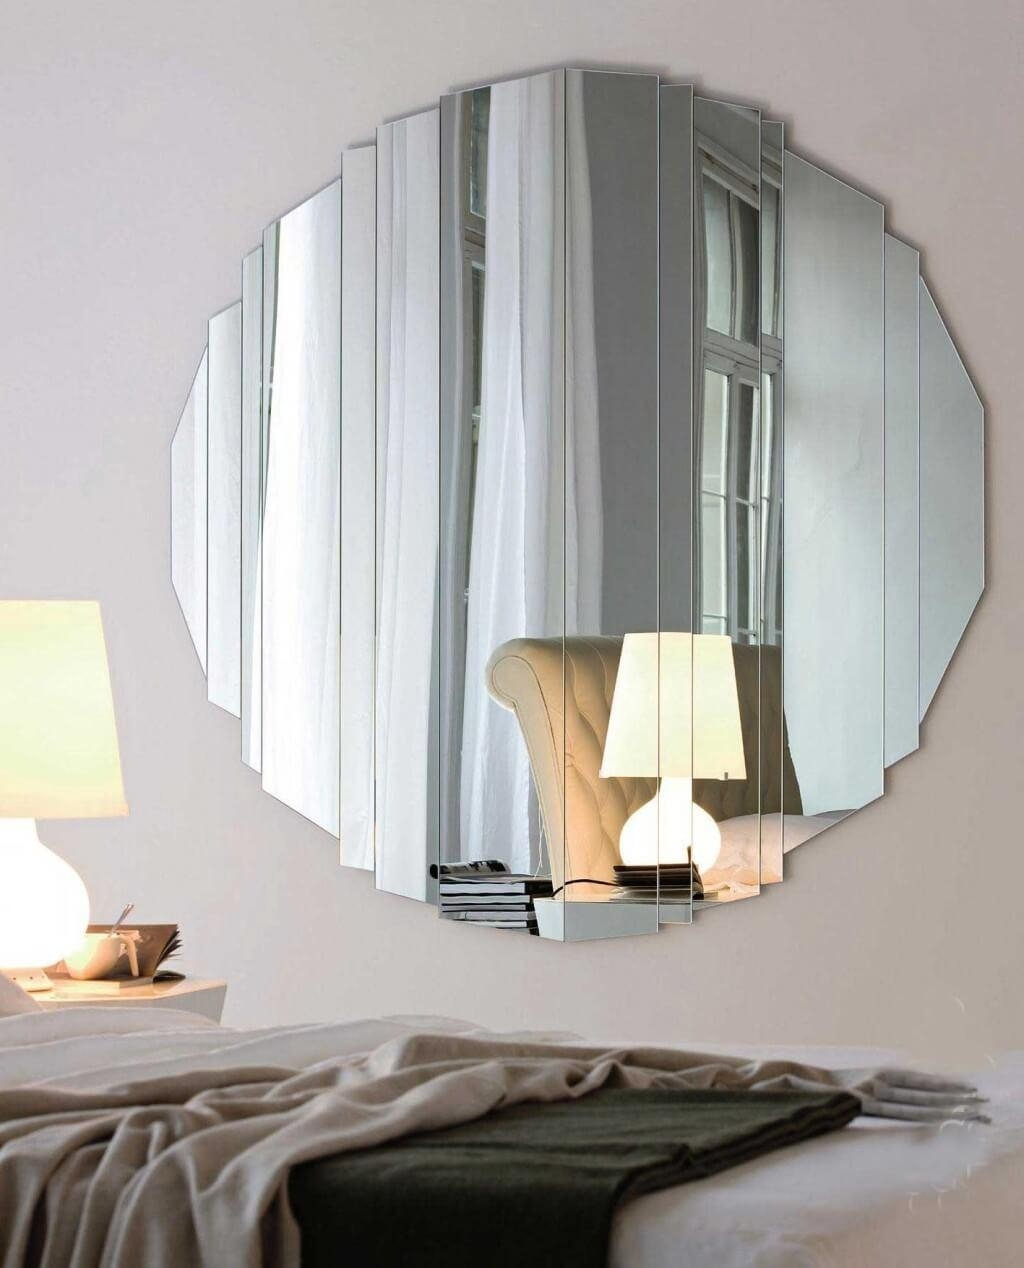 Beauty Round Mirror Wall Decor | Jeffsbakery Basement & Mattress Inside Large Modern Mirror (Image 6 of 20)